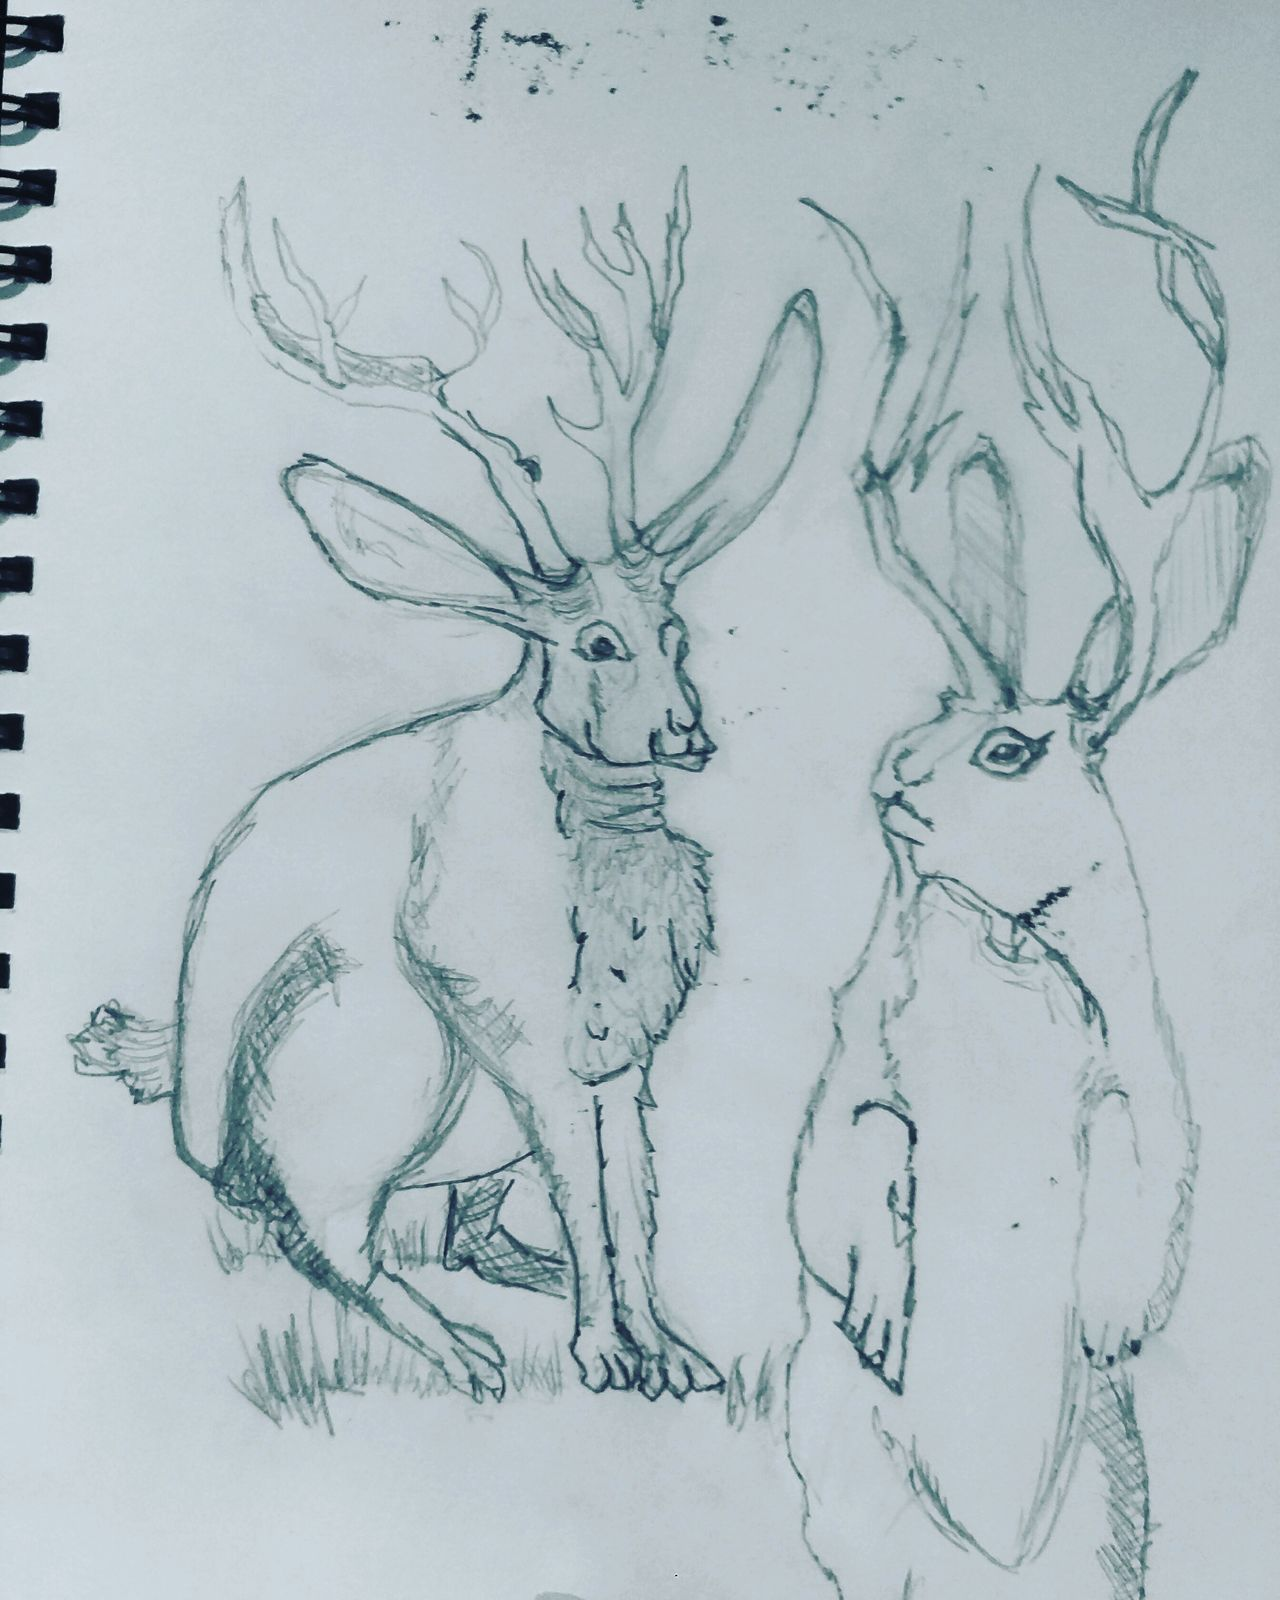 Sunday night sketches Sketchbook Pencil Jackalopes